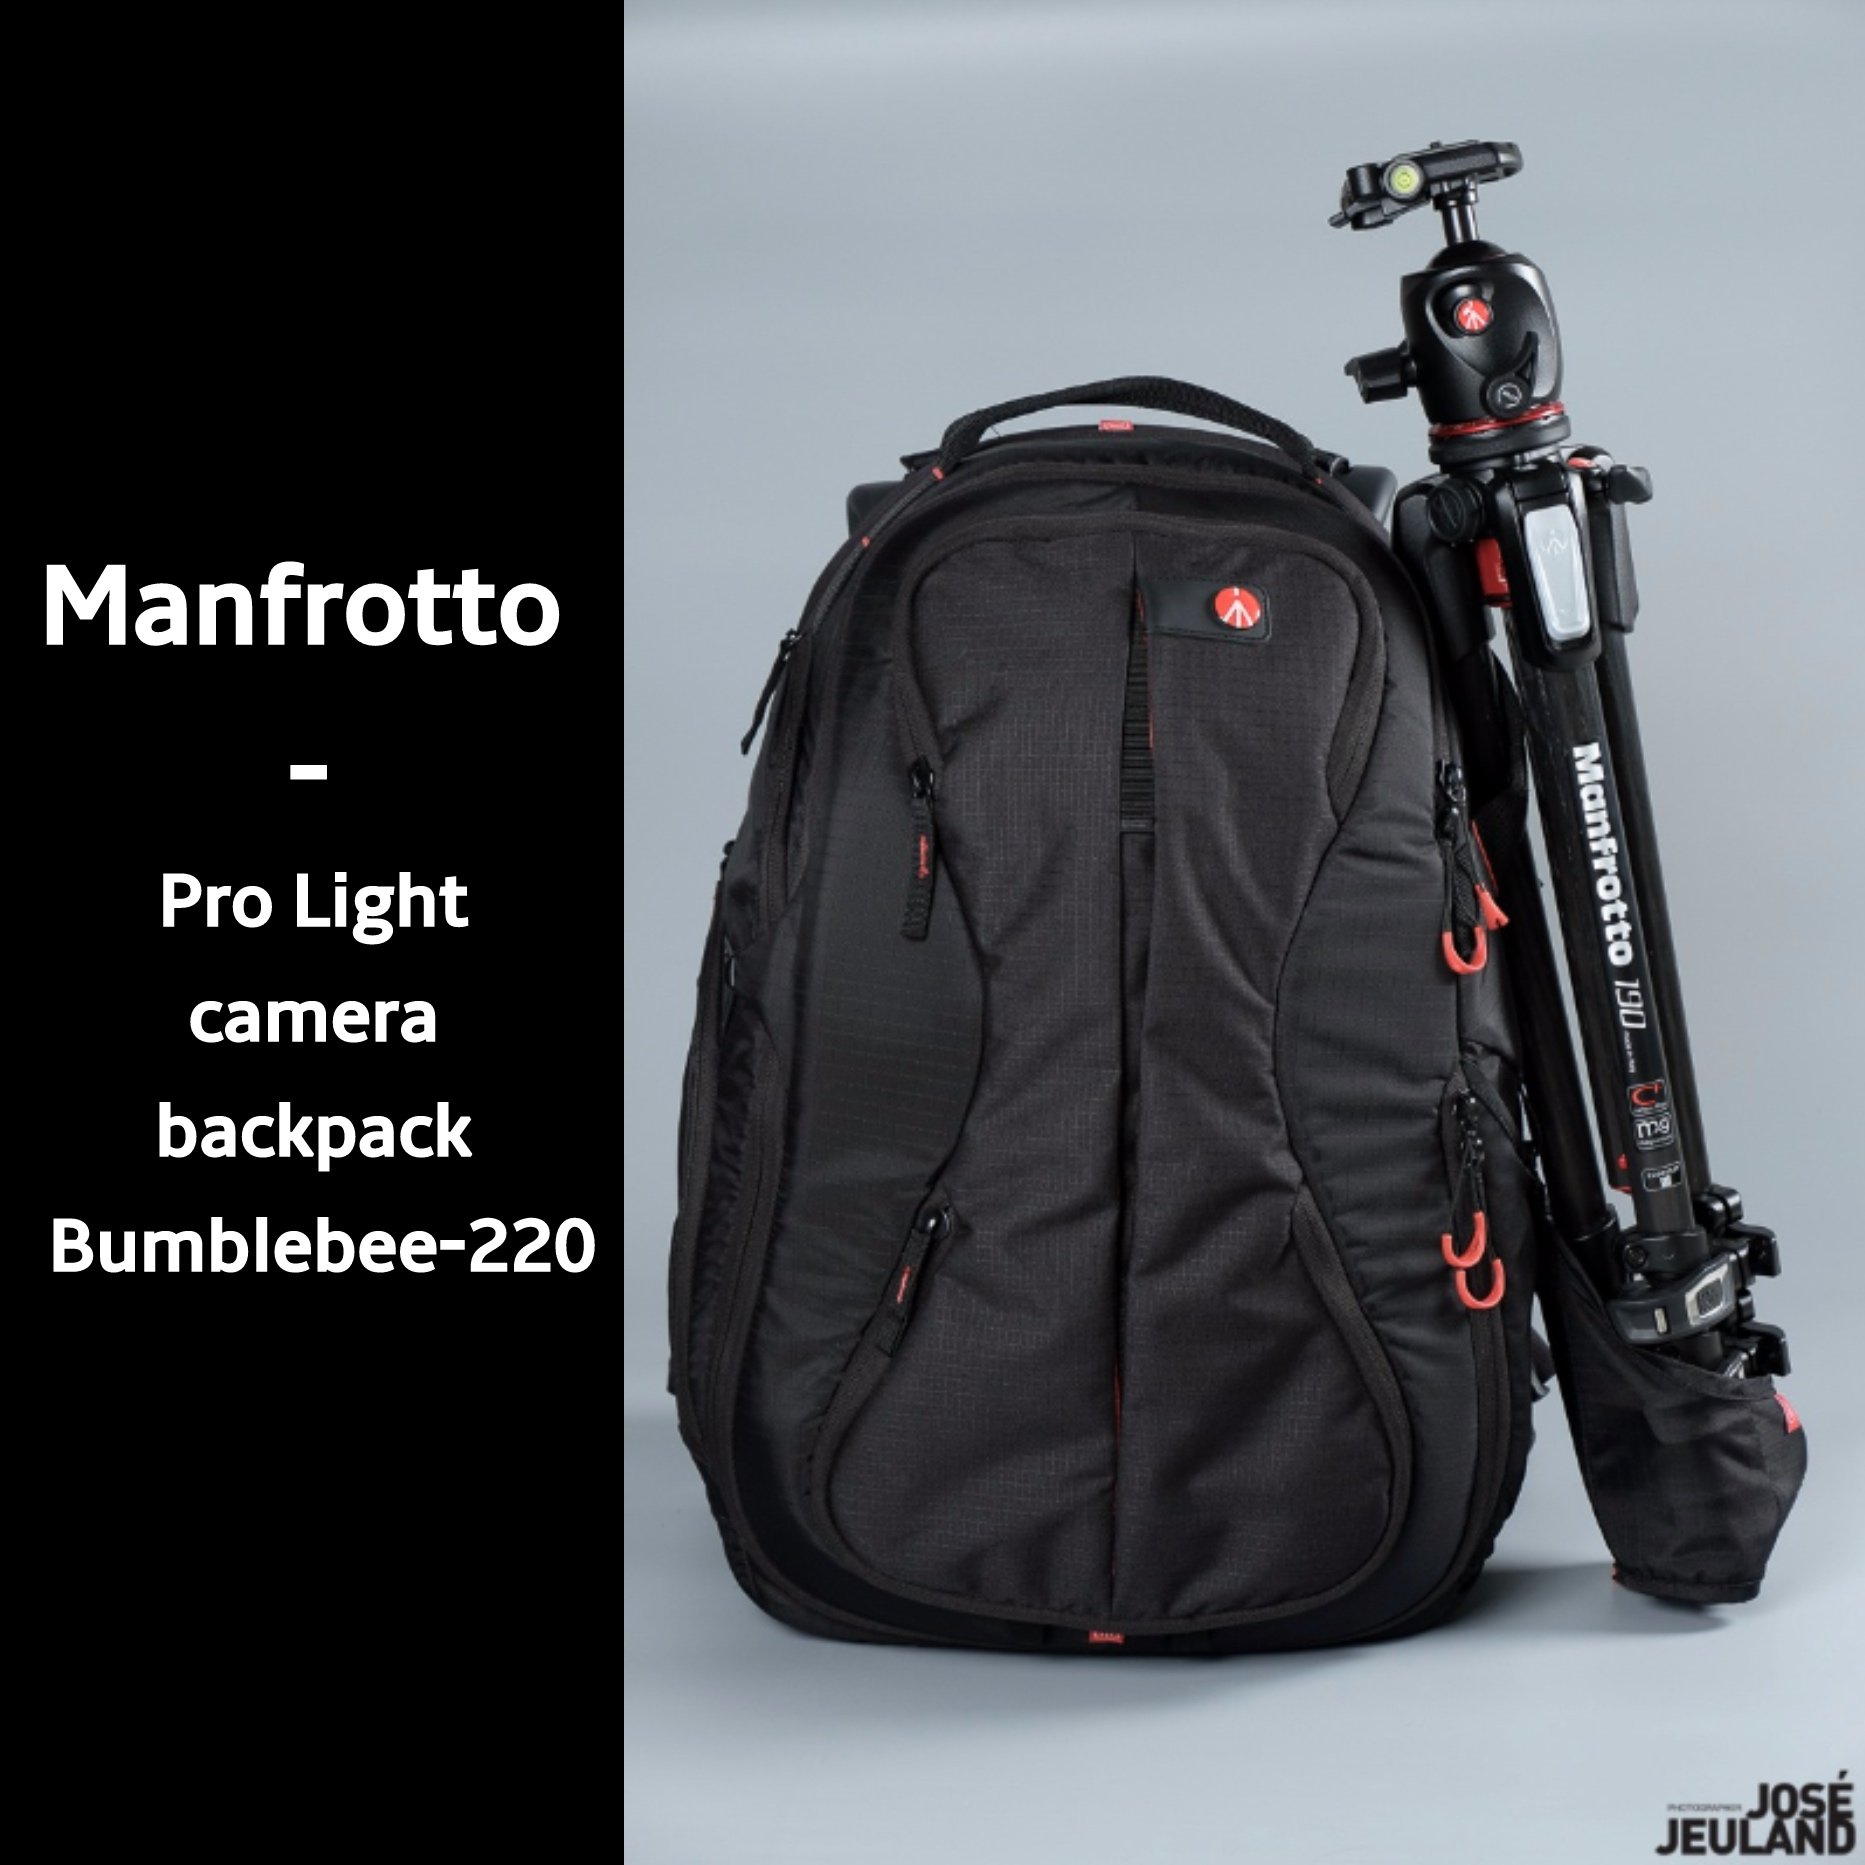 Product Review: the Manfrotto '' Pro Light camera backpack Bumblebee-220 ''